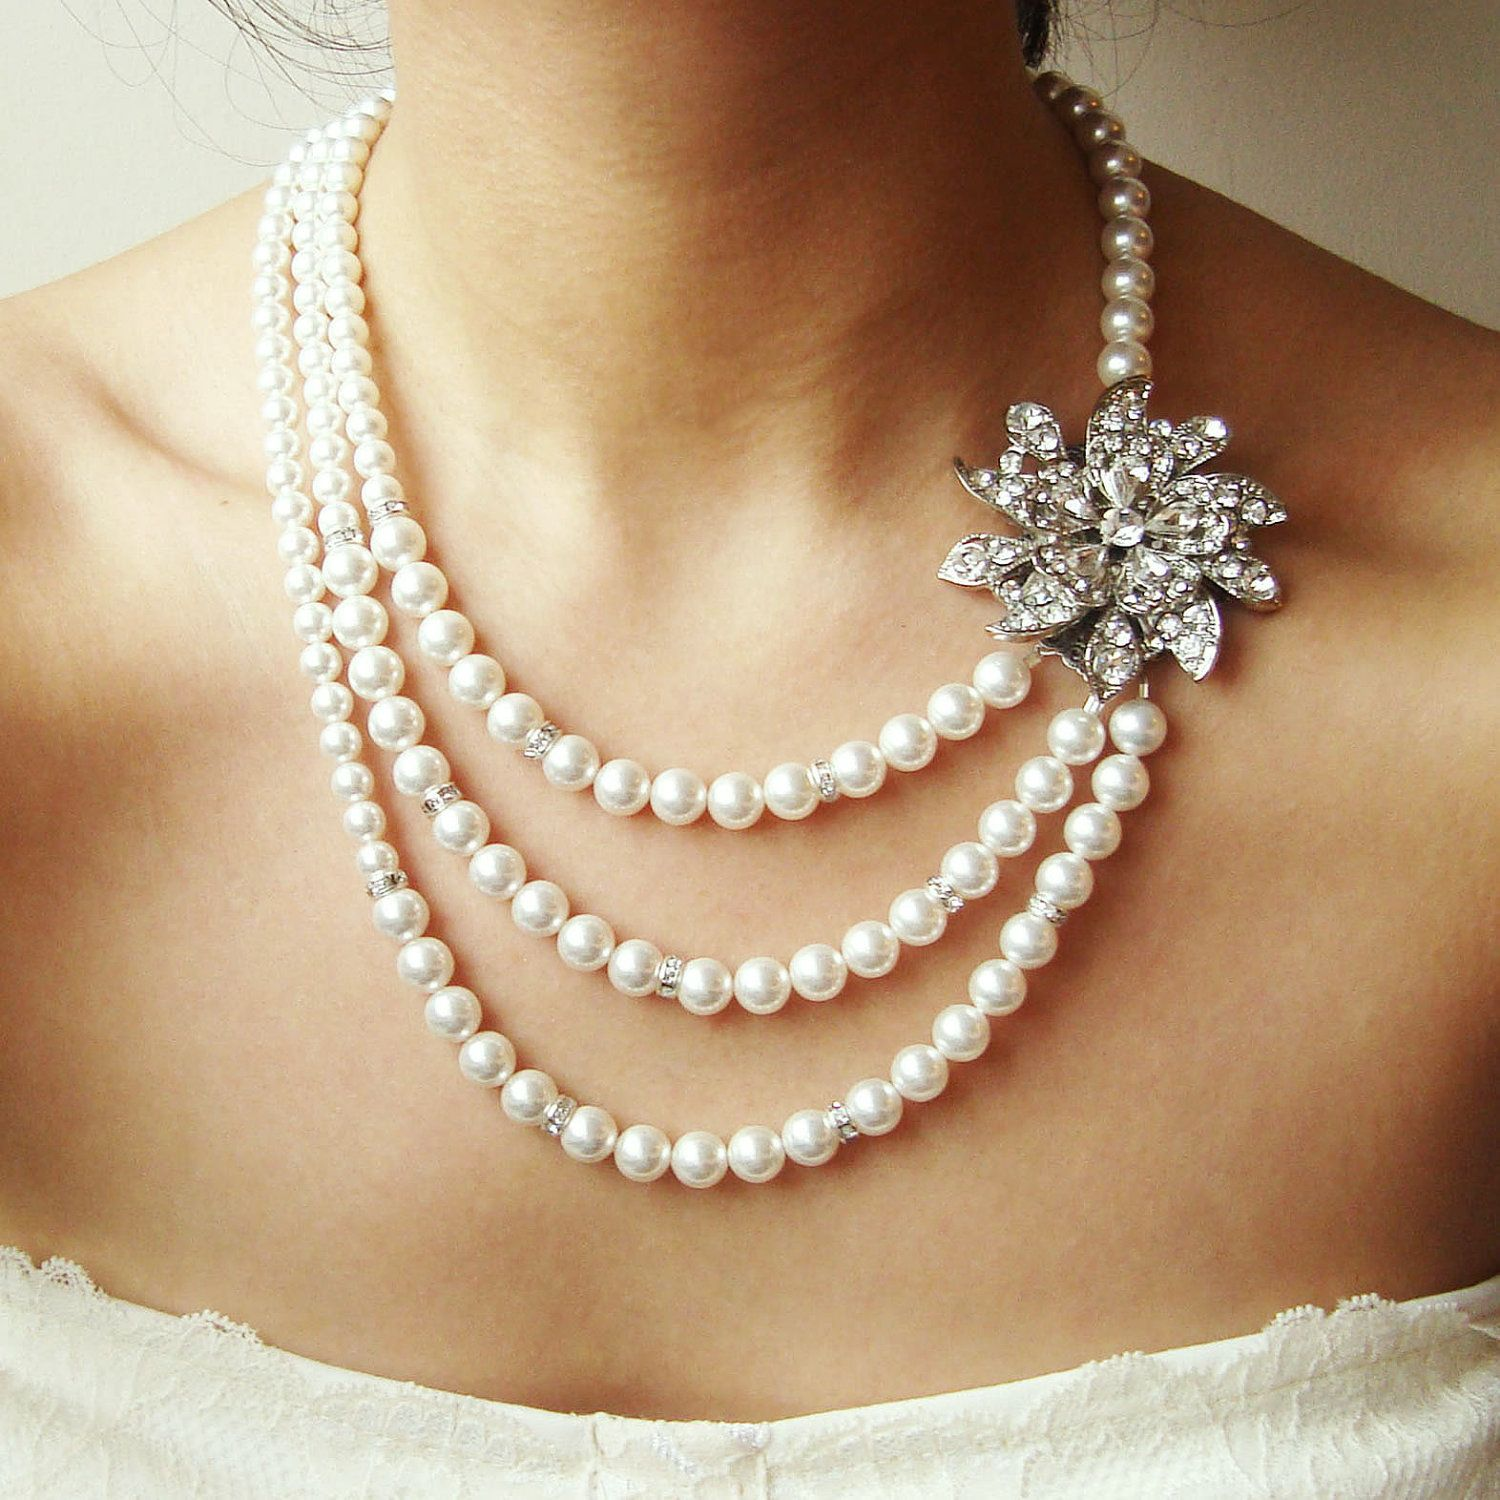 Bridal Pearl Necklace Vintage Wedding Jewelry by luxedeluxe